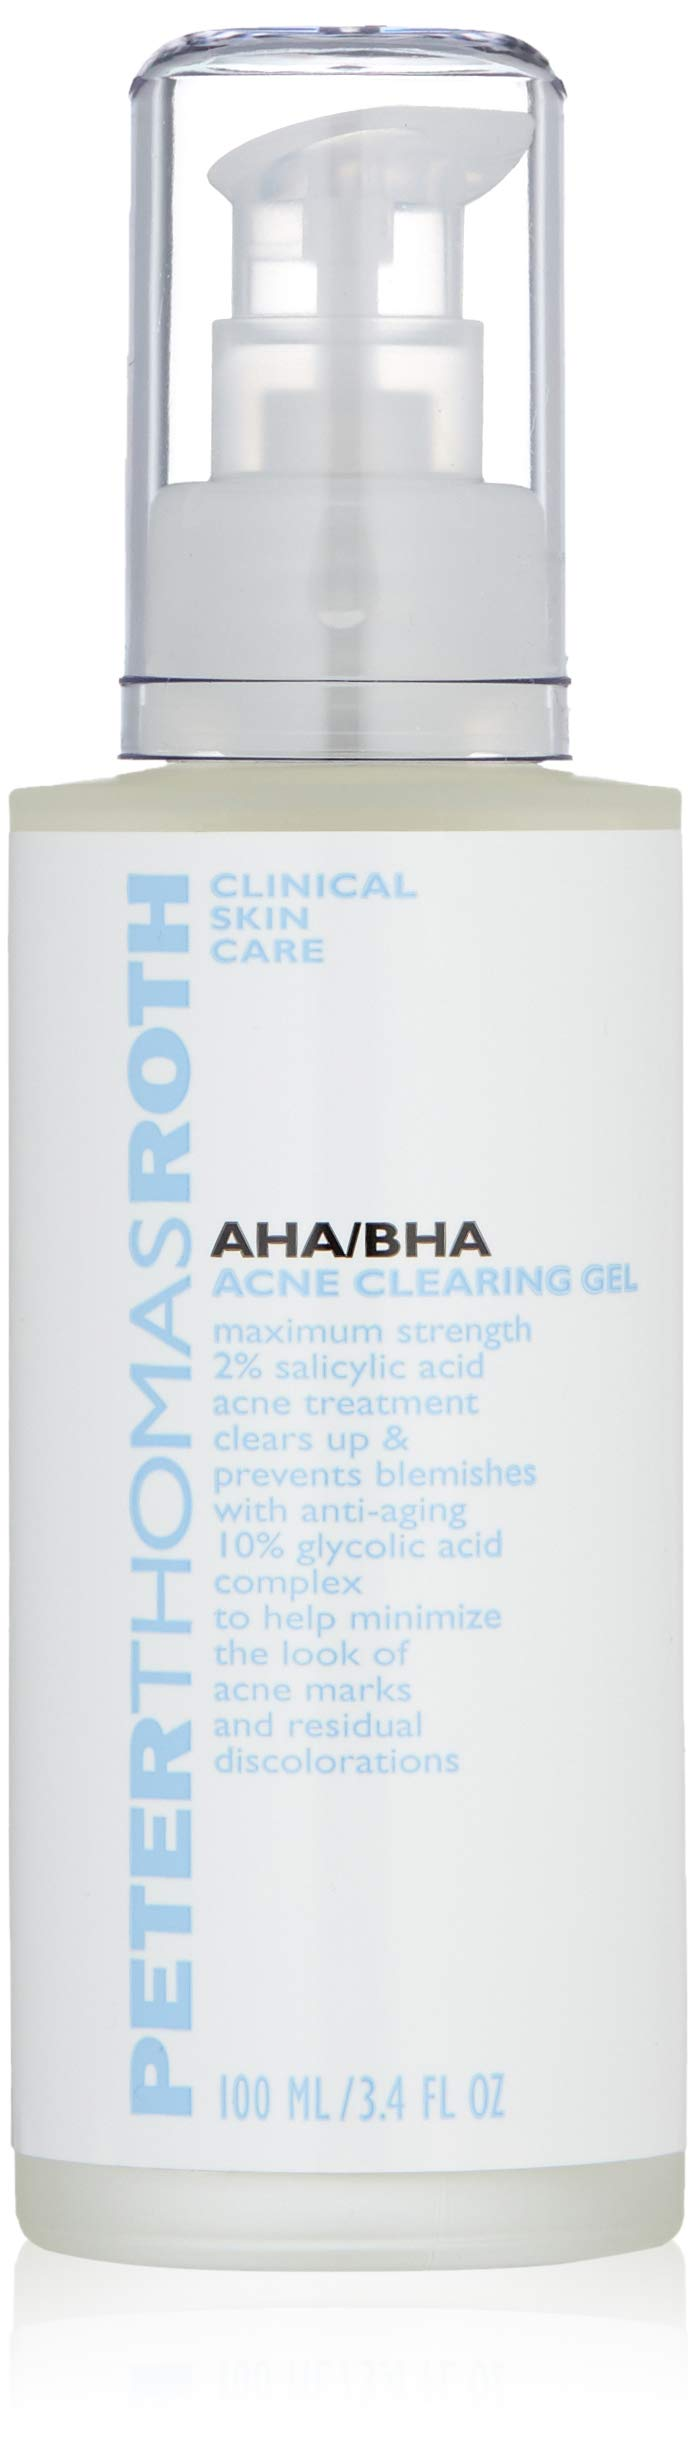 Peter Thomas Roth Aha/bha Acne Clearing Gel, 3.4 fl. oz.